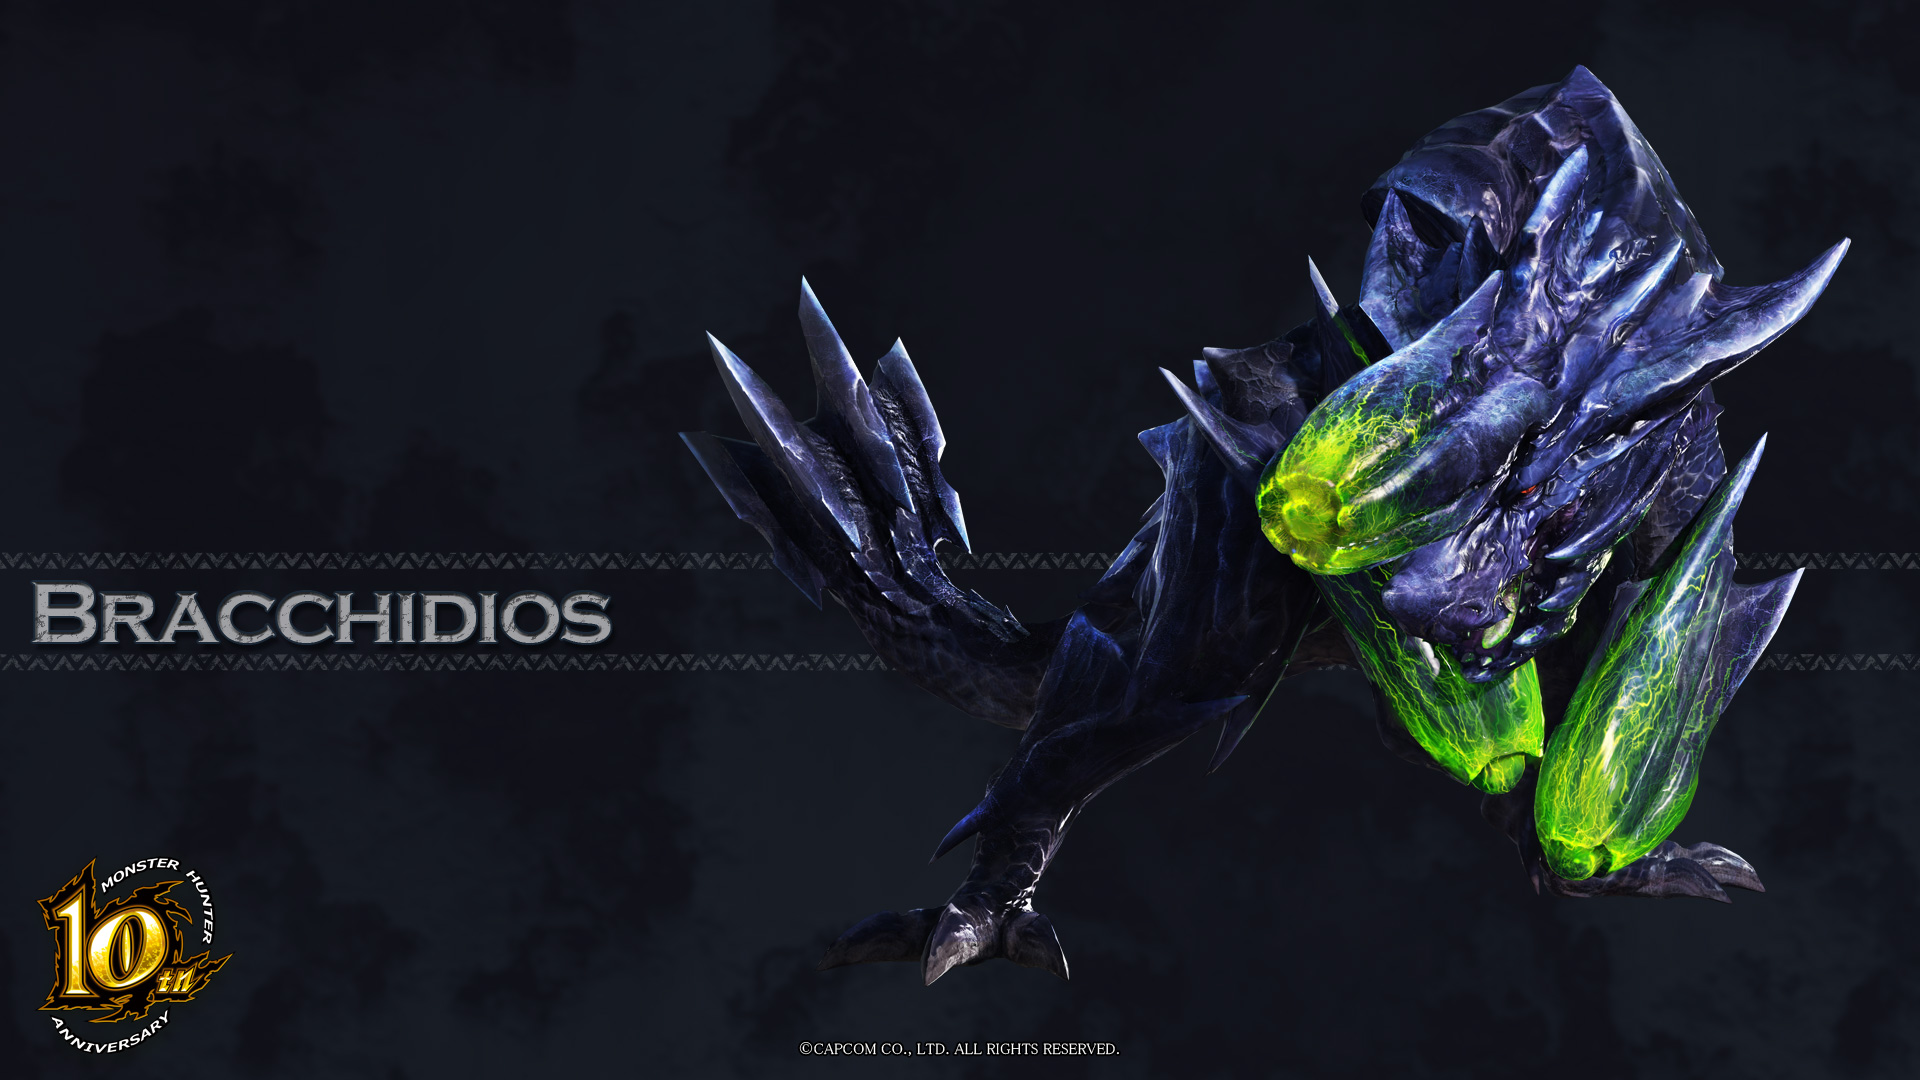 MH 10th Anniversary Brachydios Wallpaper 001